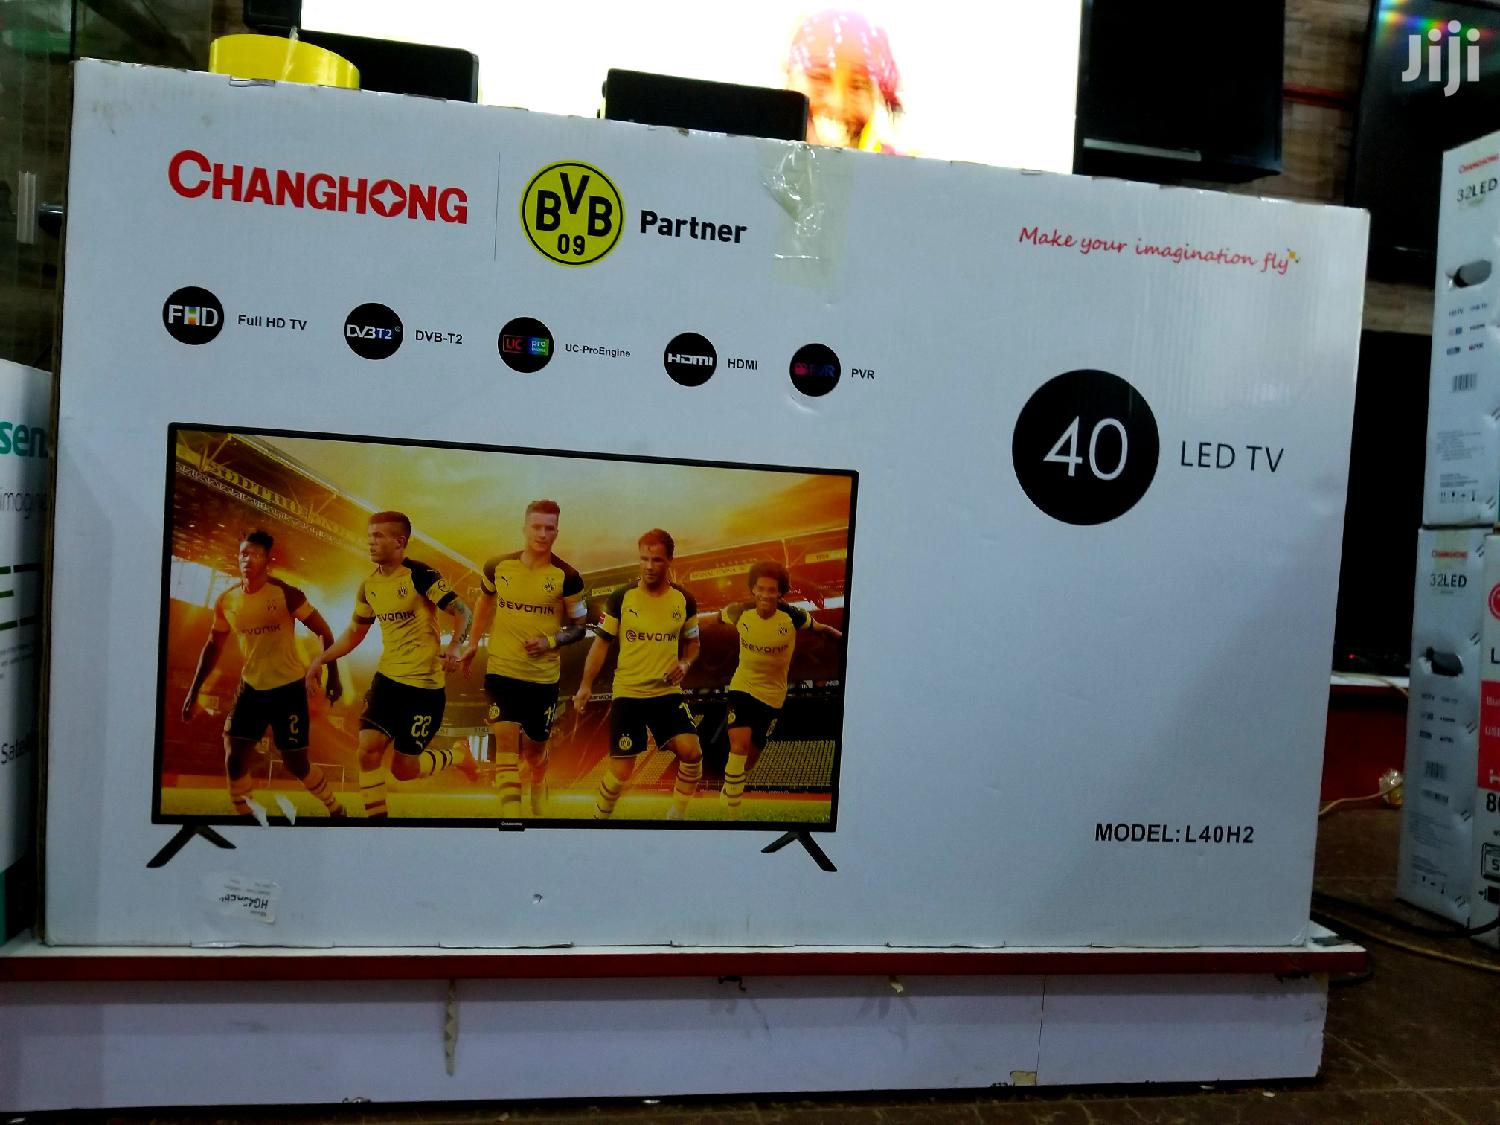 New Changhong LED Flat Screen TV 40 Inches